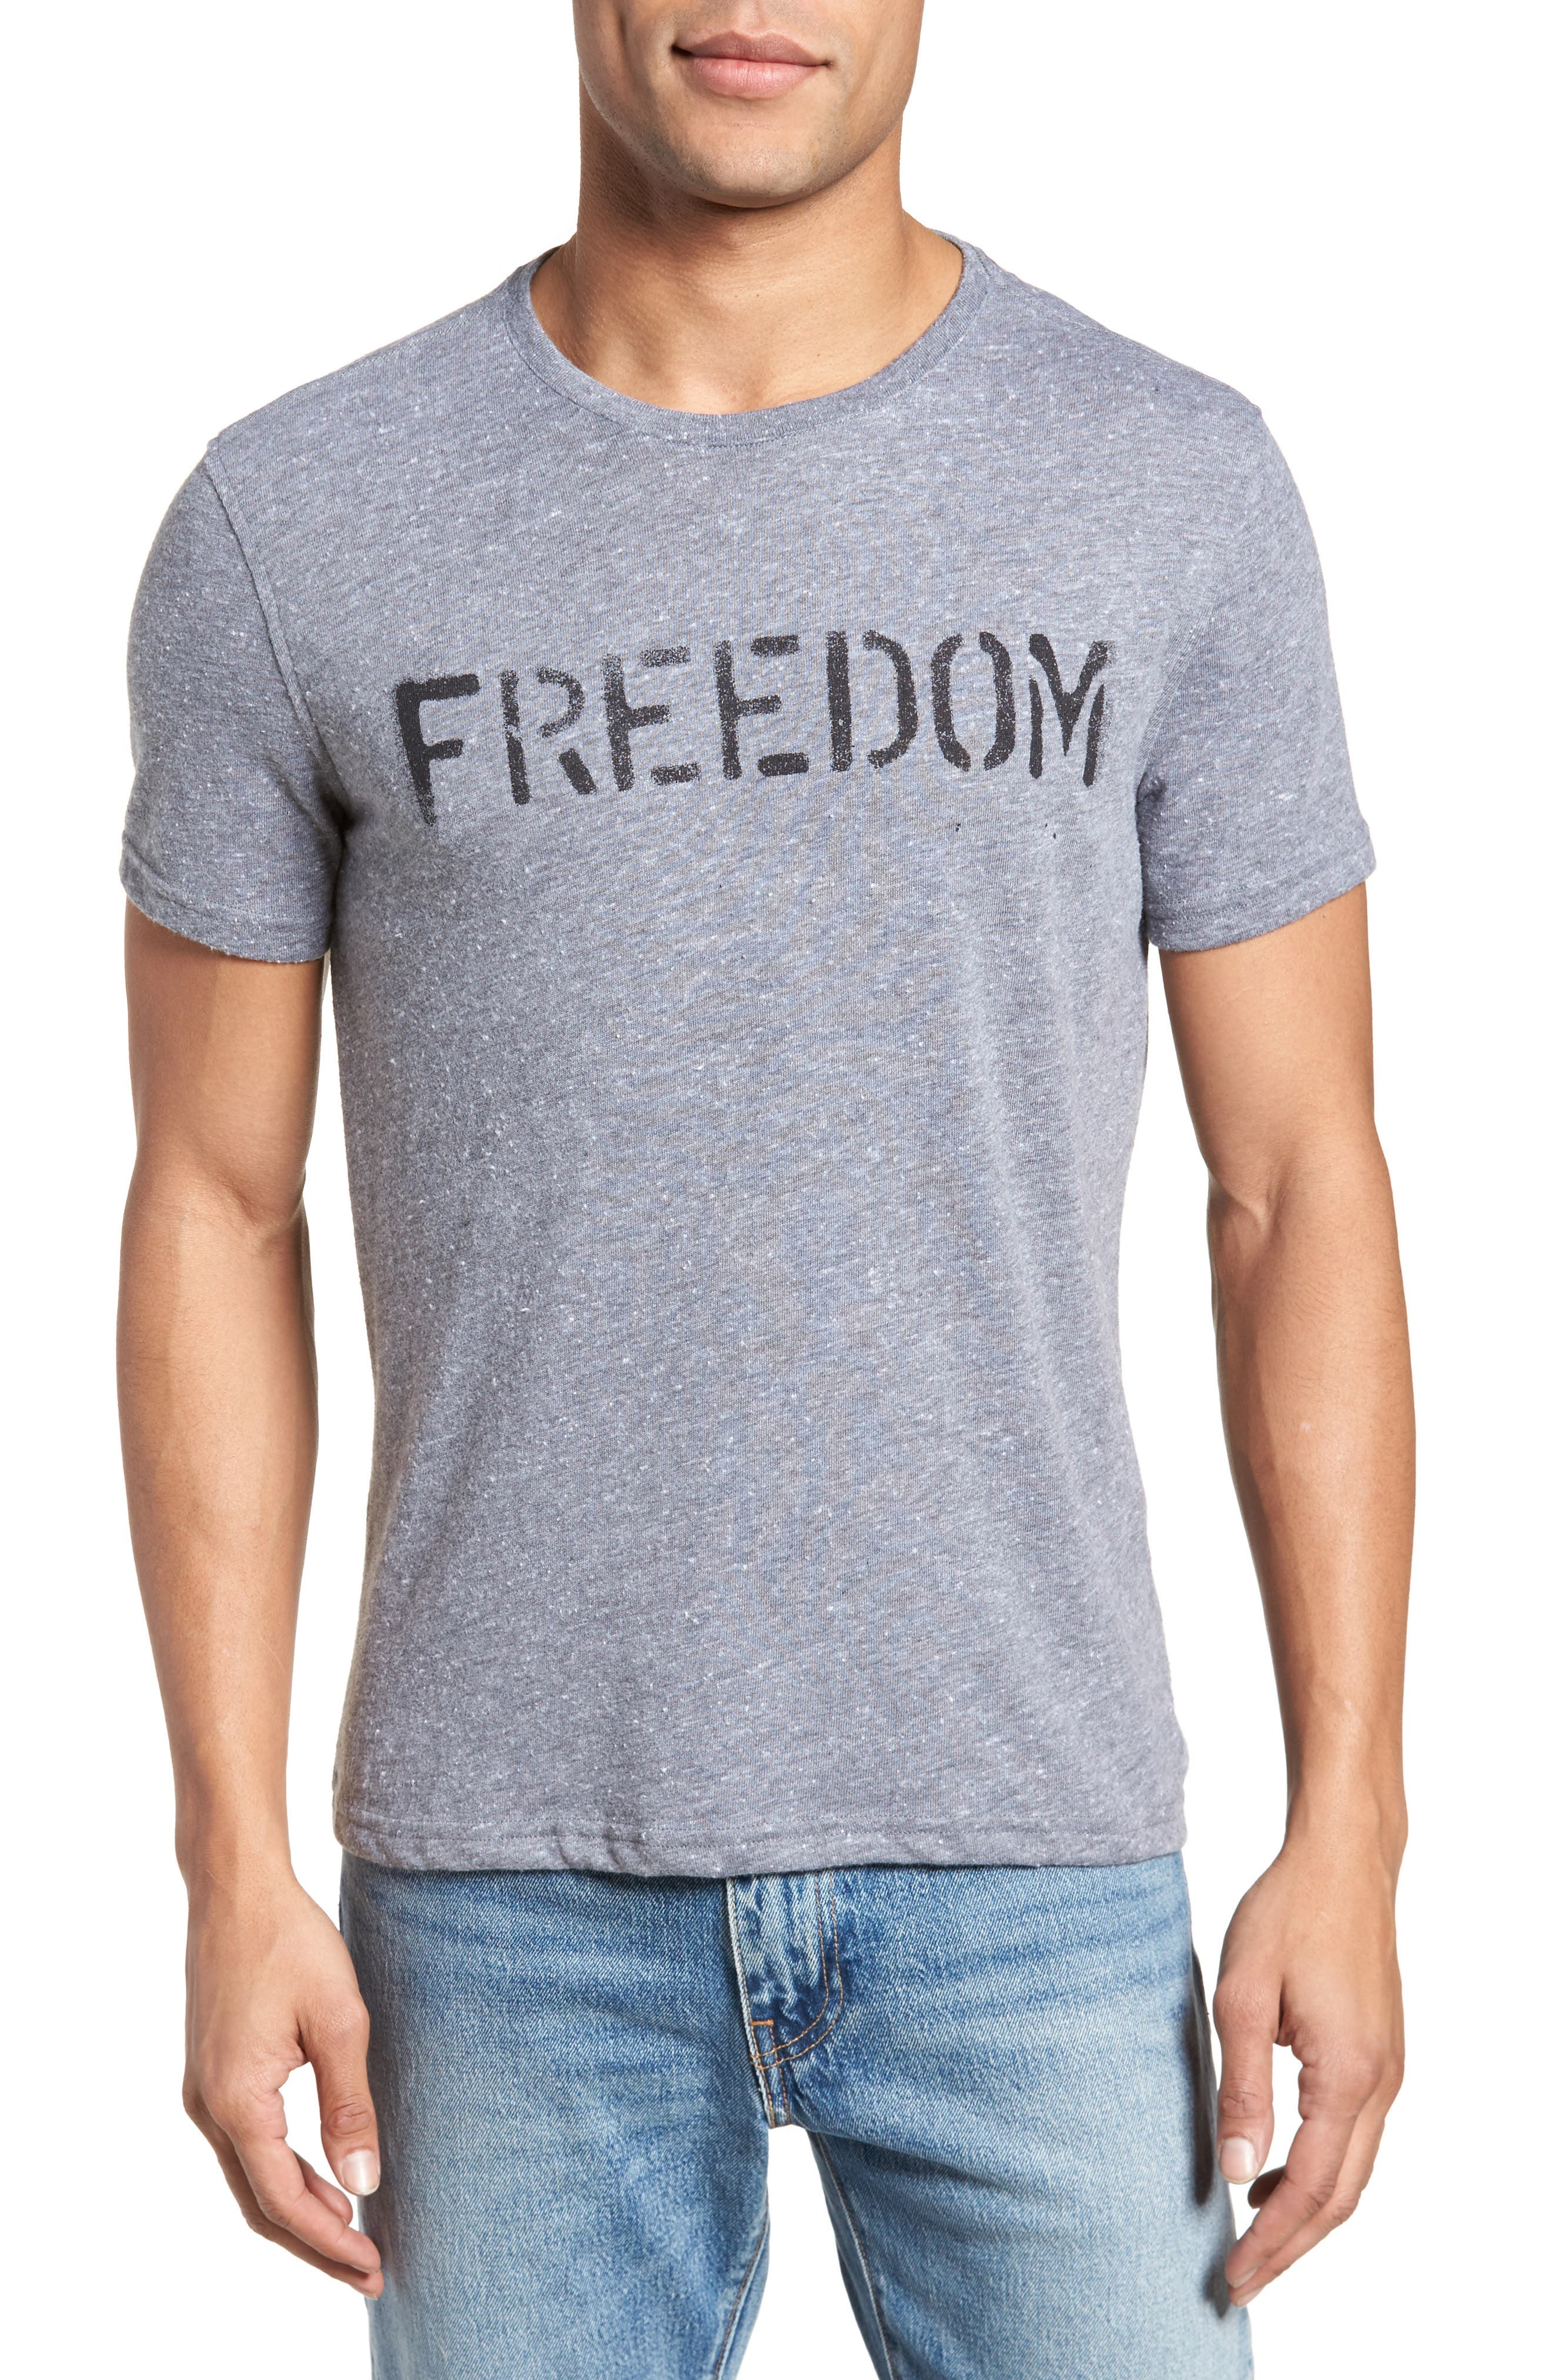 Freedom Graphic T-Shirt,                         Main,                         color, 073